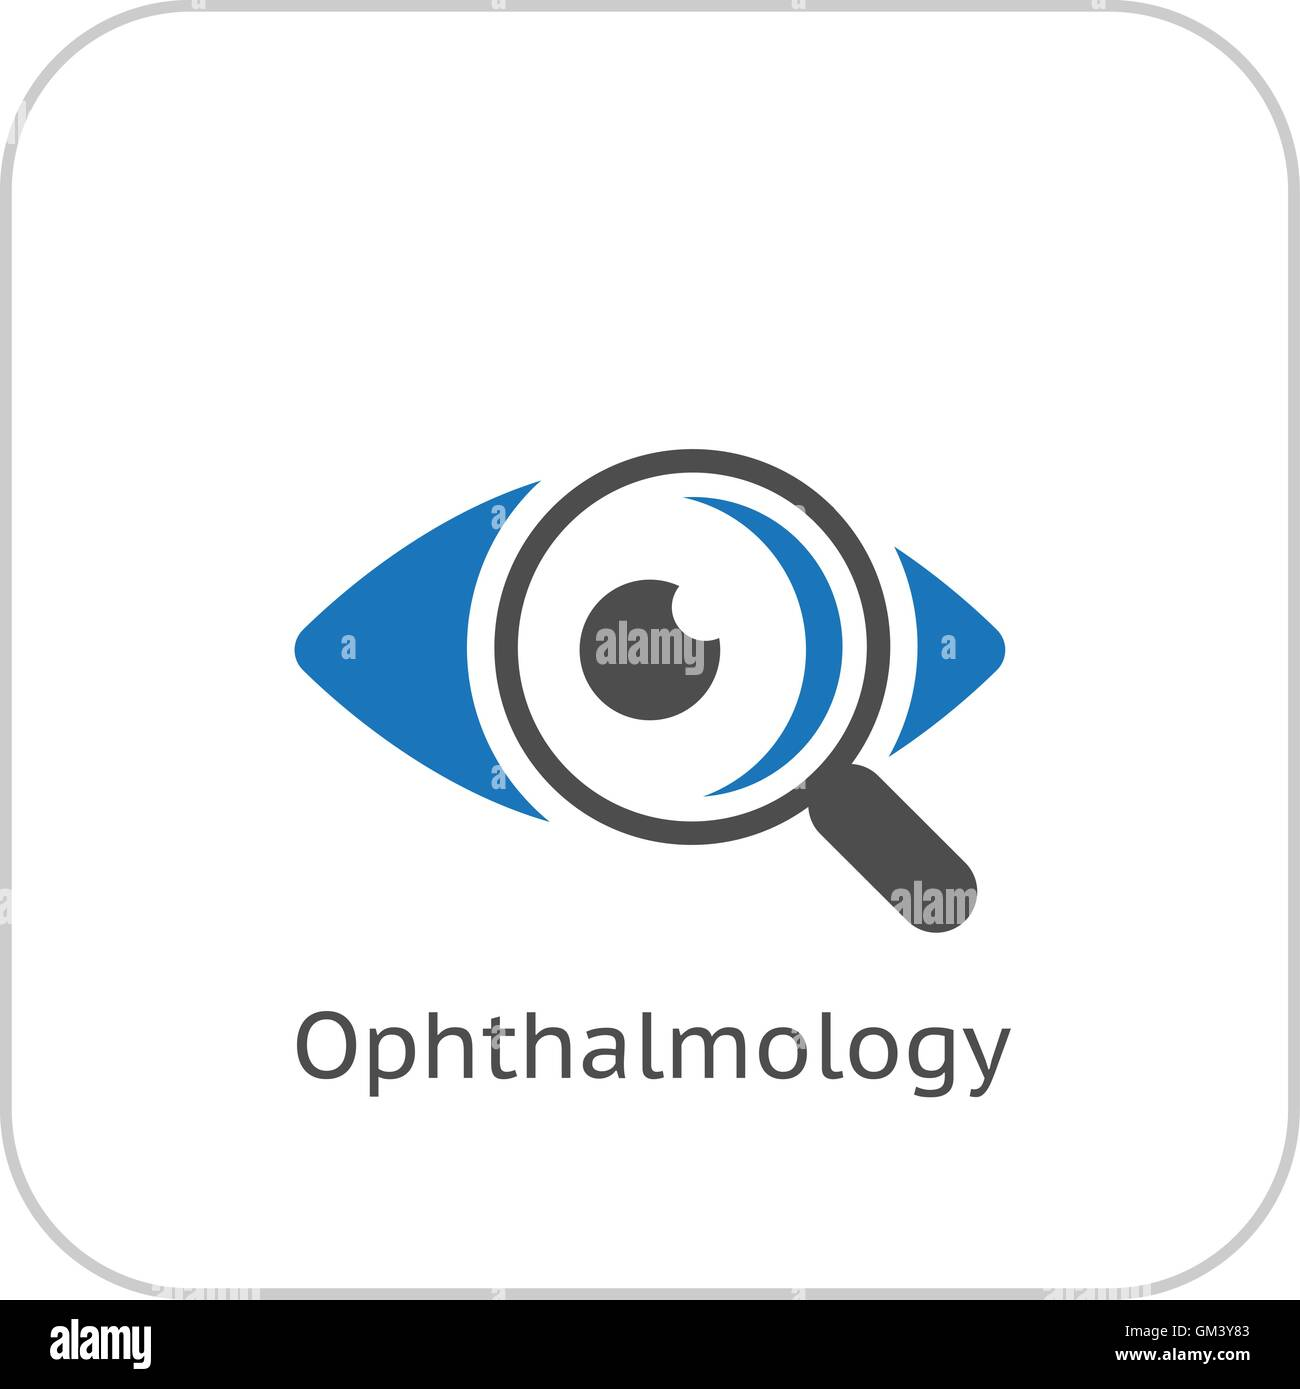 Ophthalmology and Medical Services Icon. Flat Design. - Stock Image